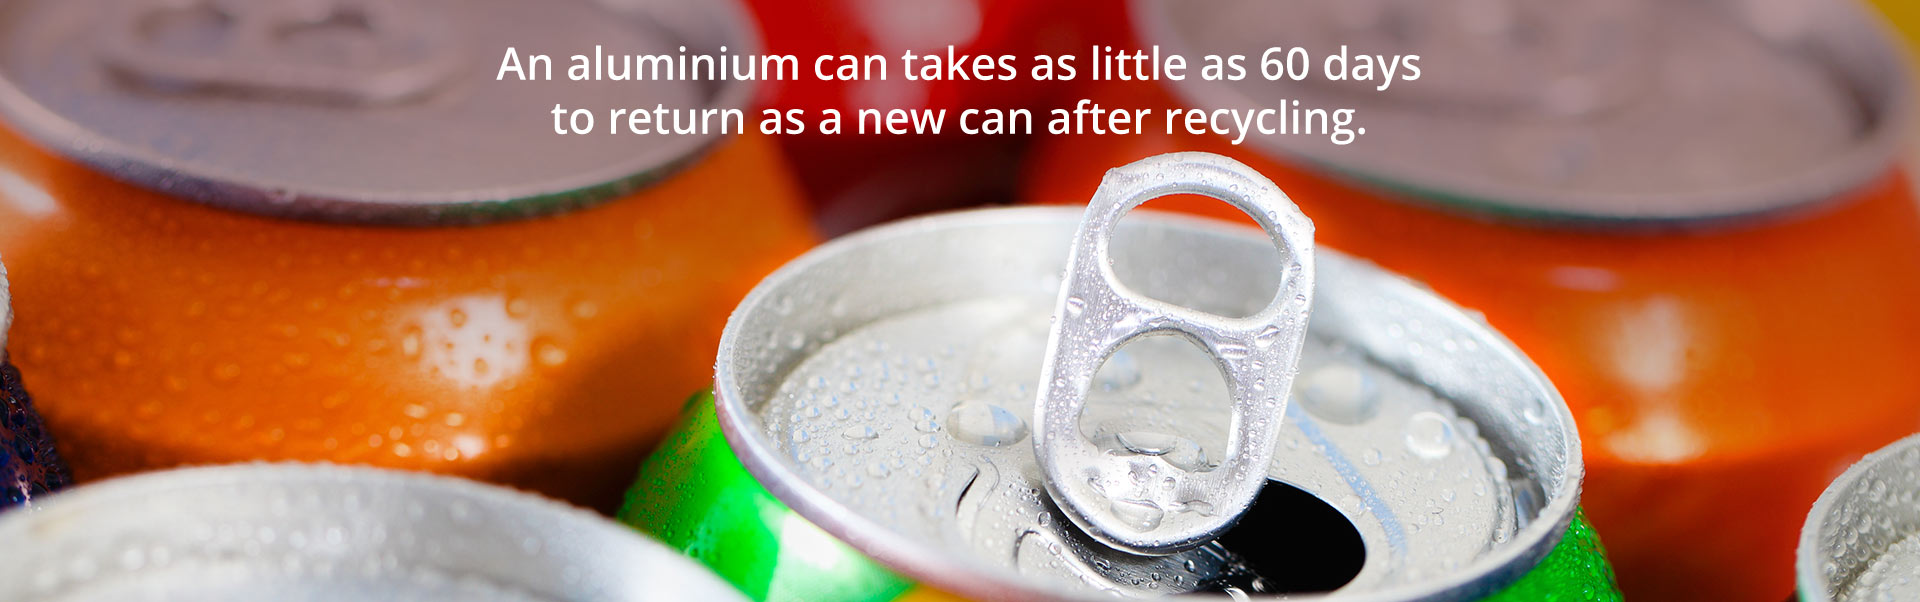 new can recycling